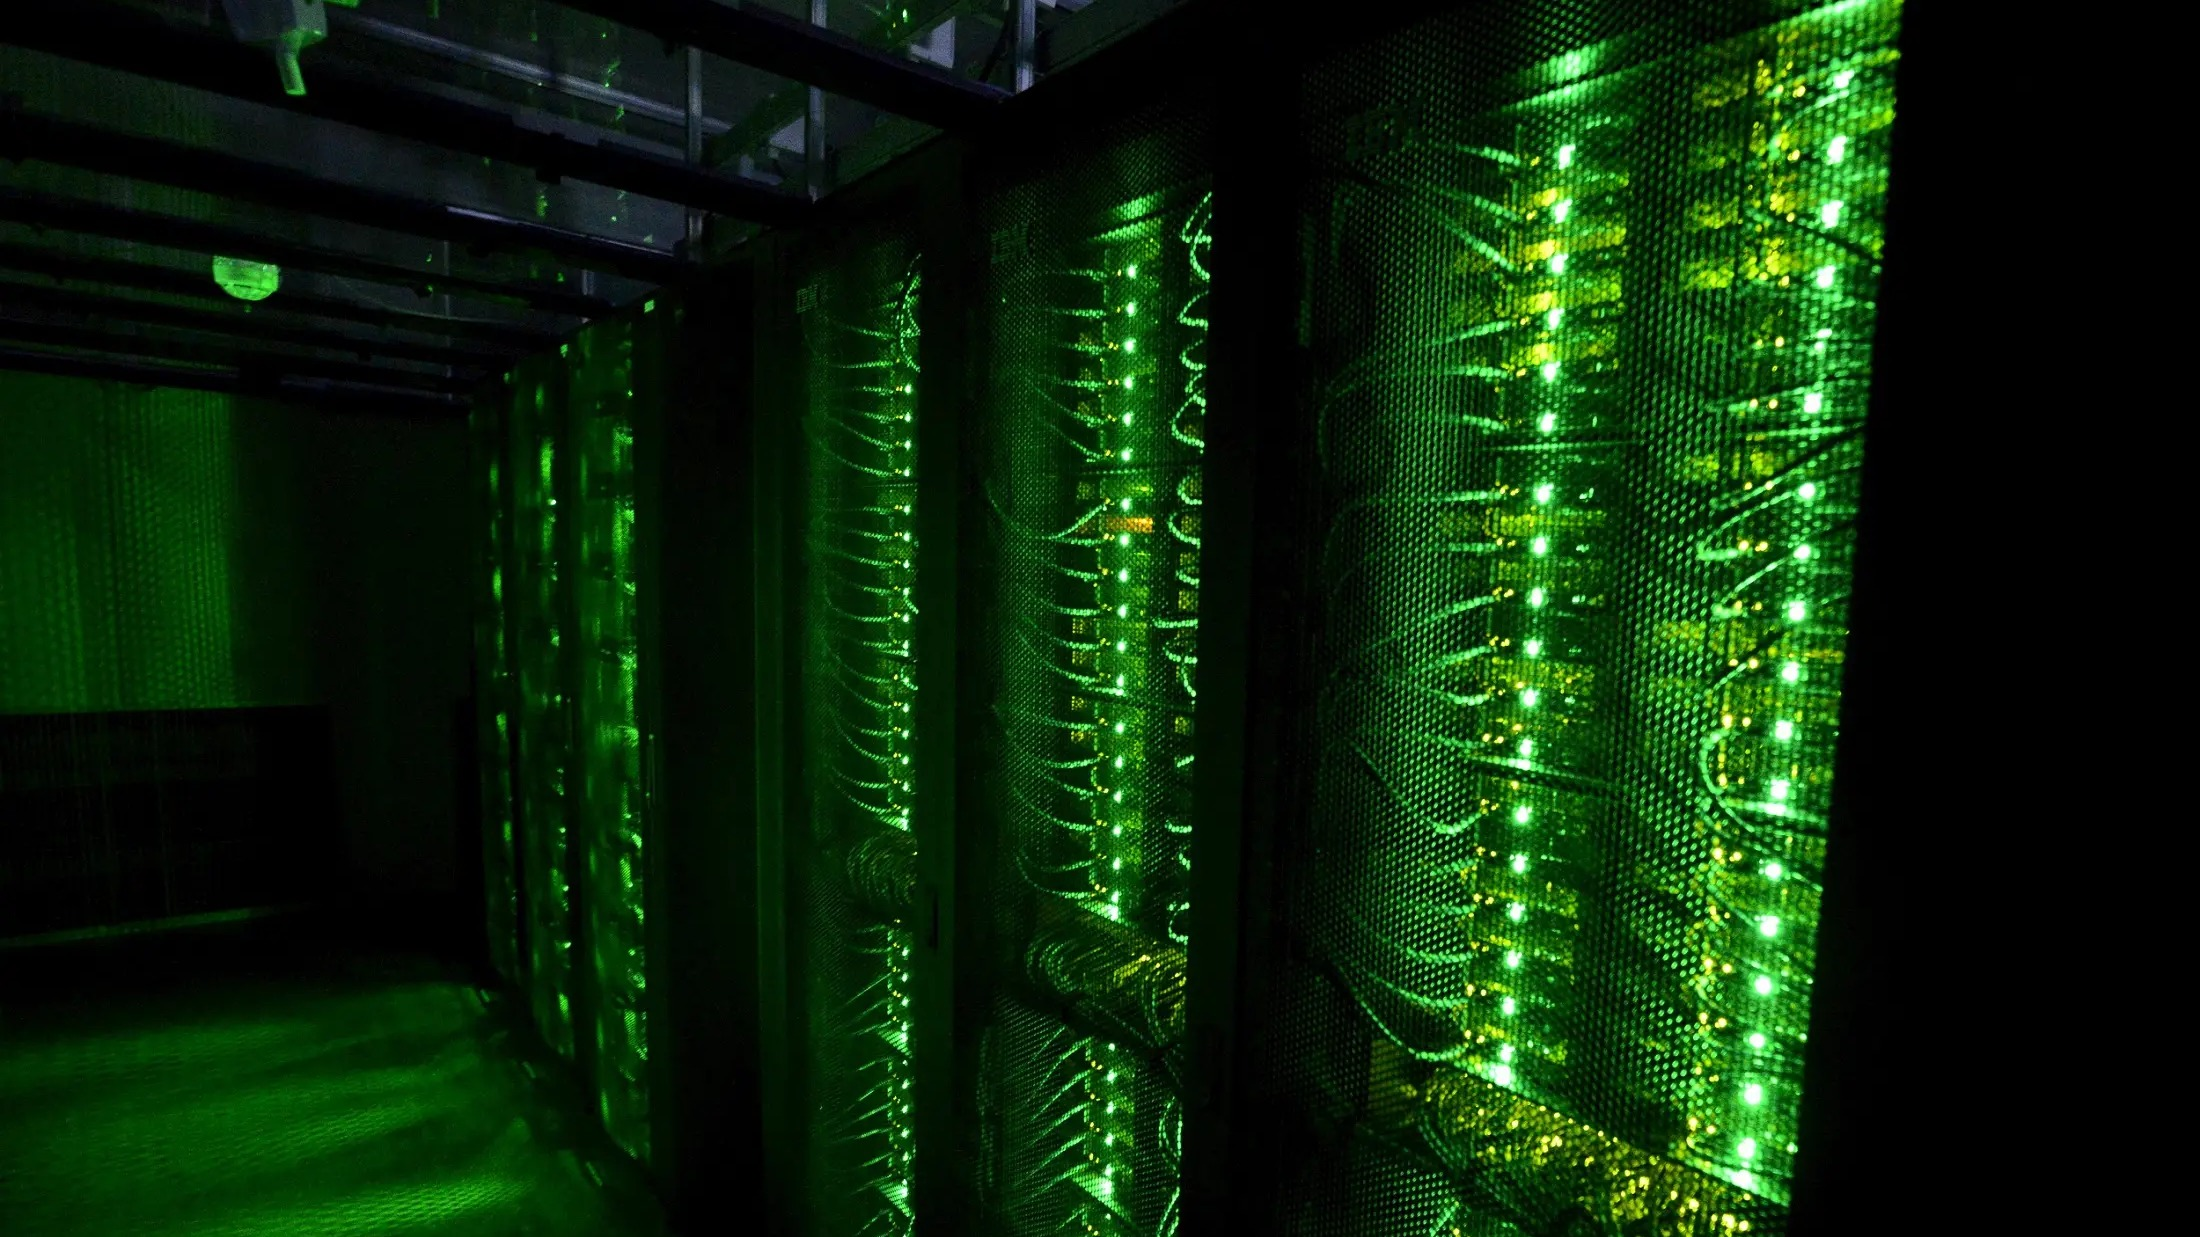 Citic and Itochu to jointly finance data centers in China